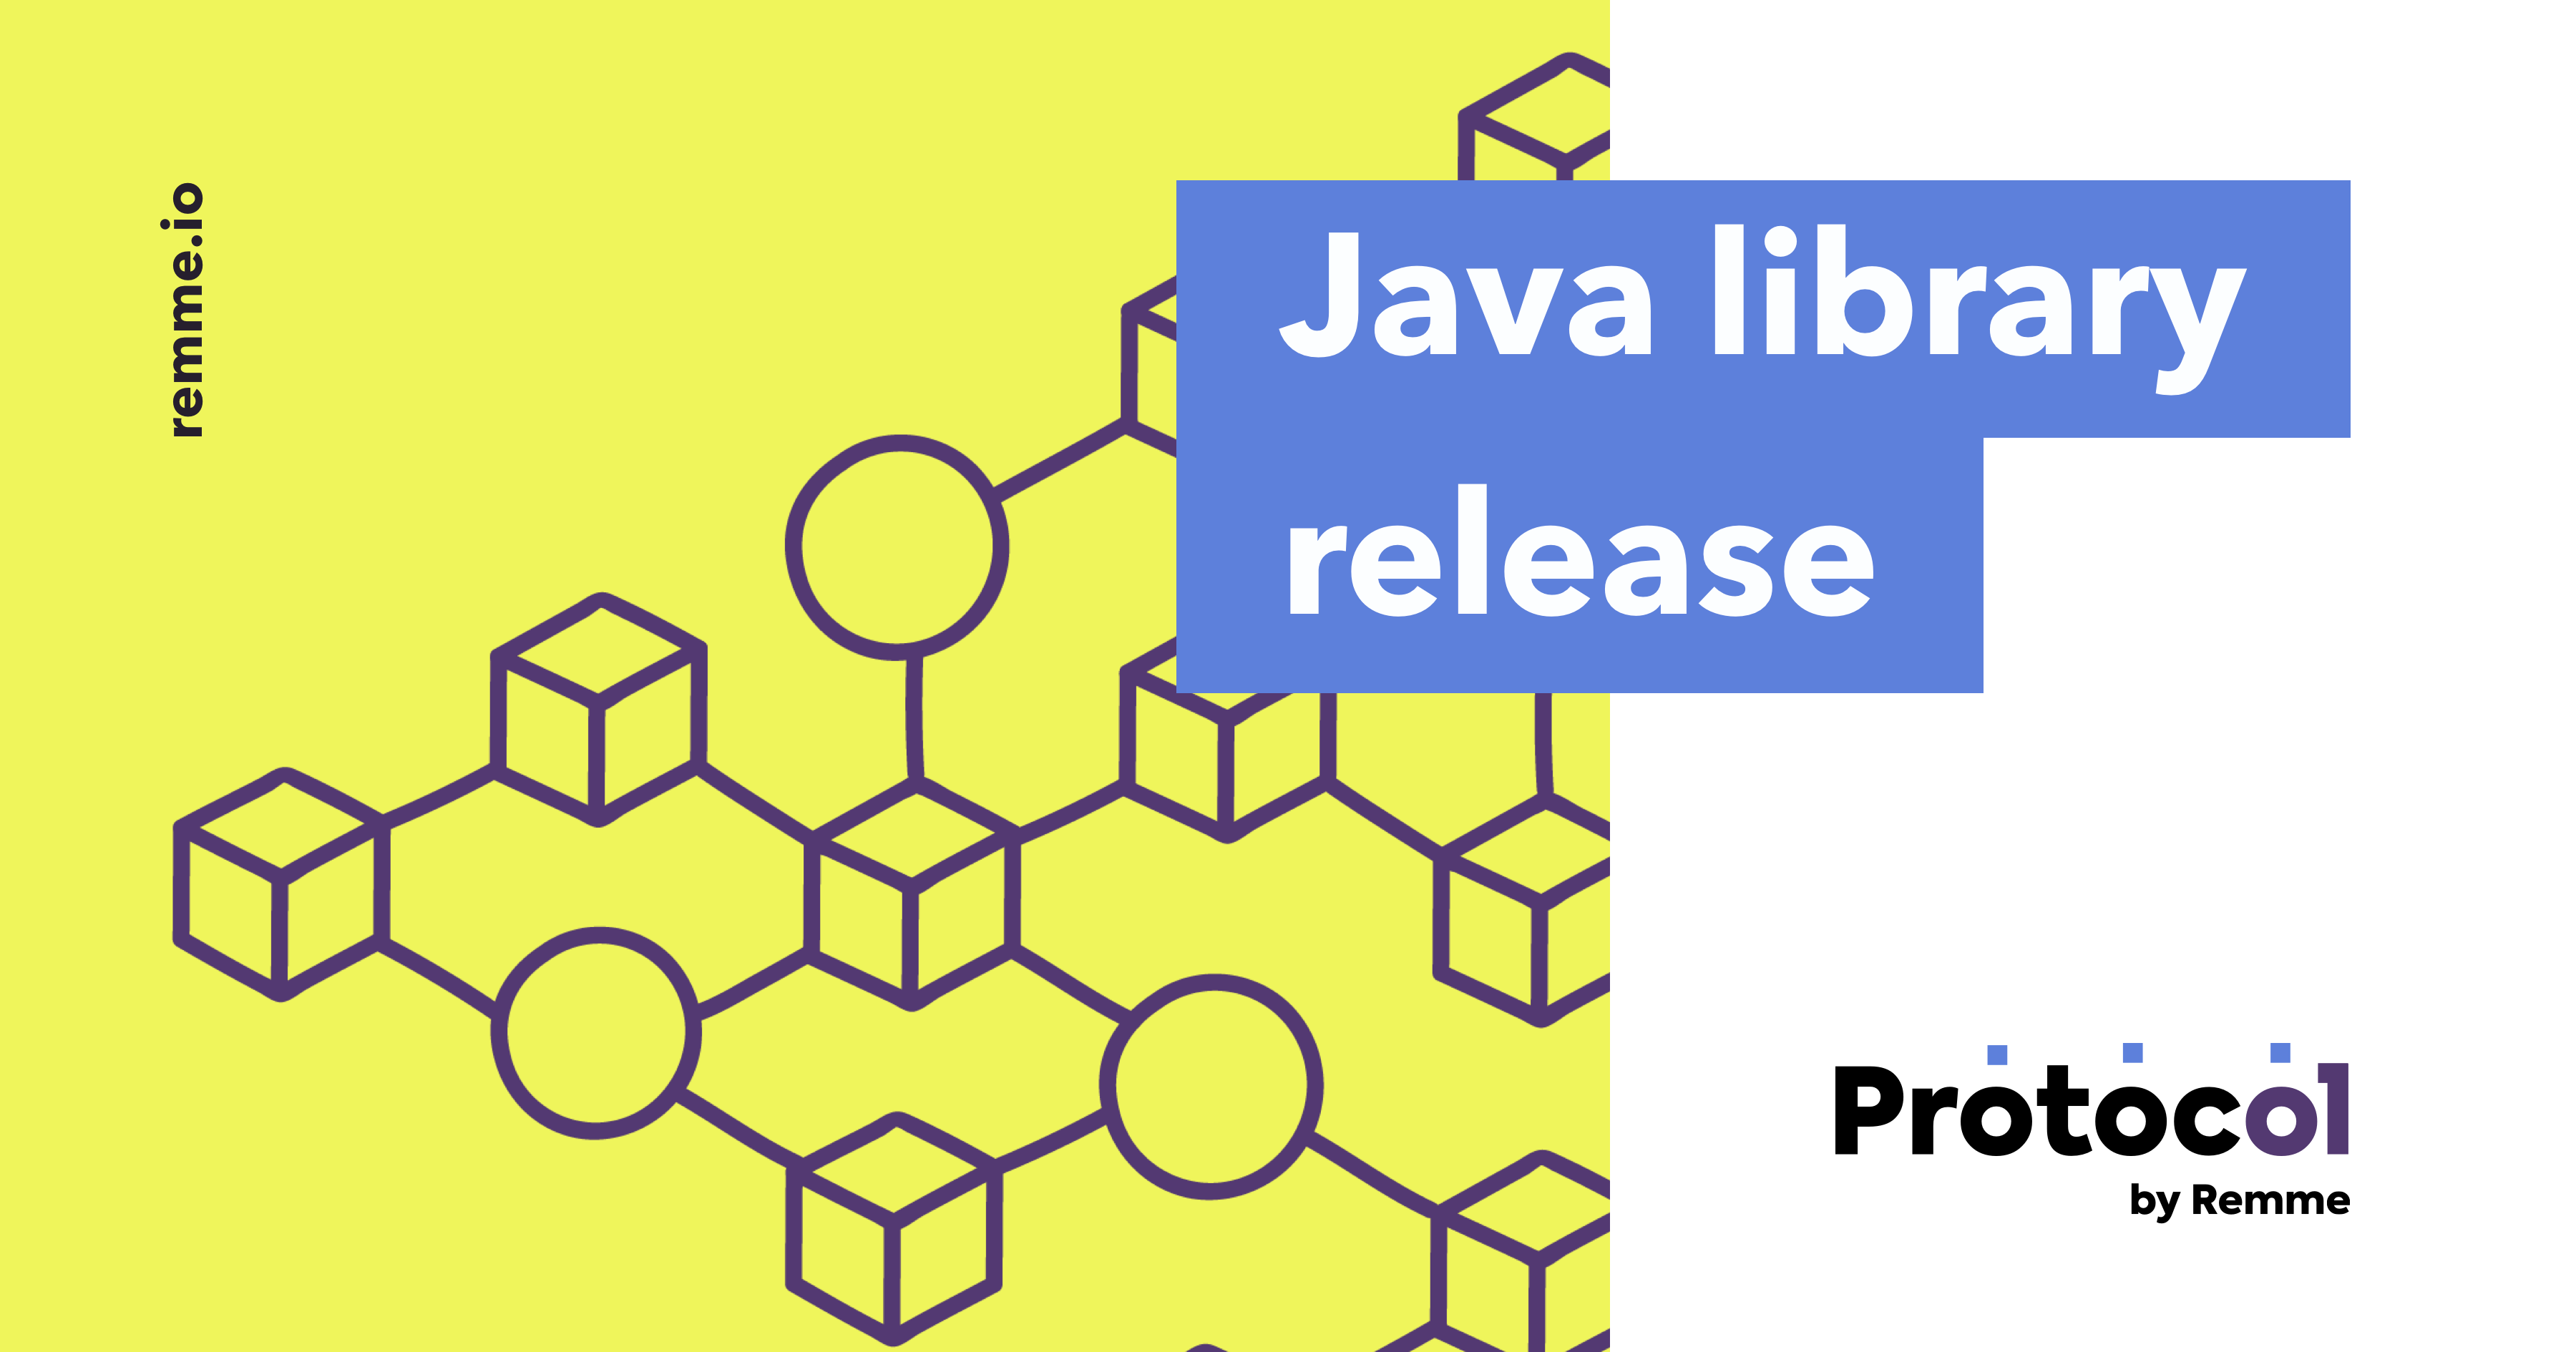 Get started with Remme Protocol using the new Java library